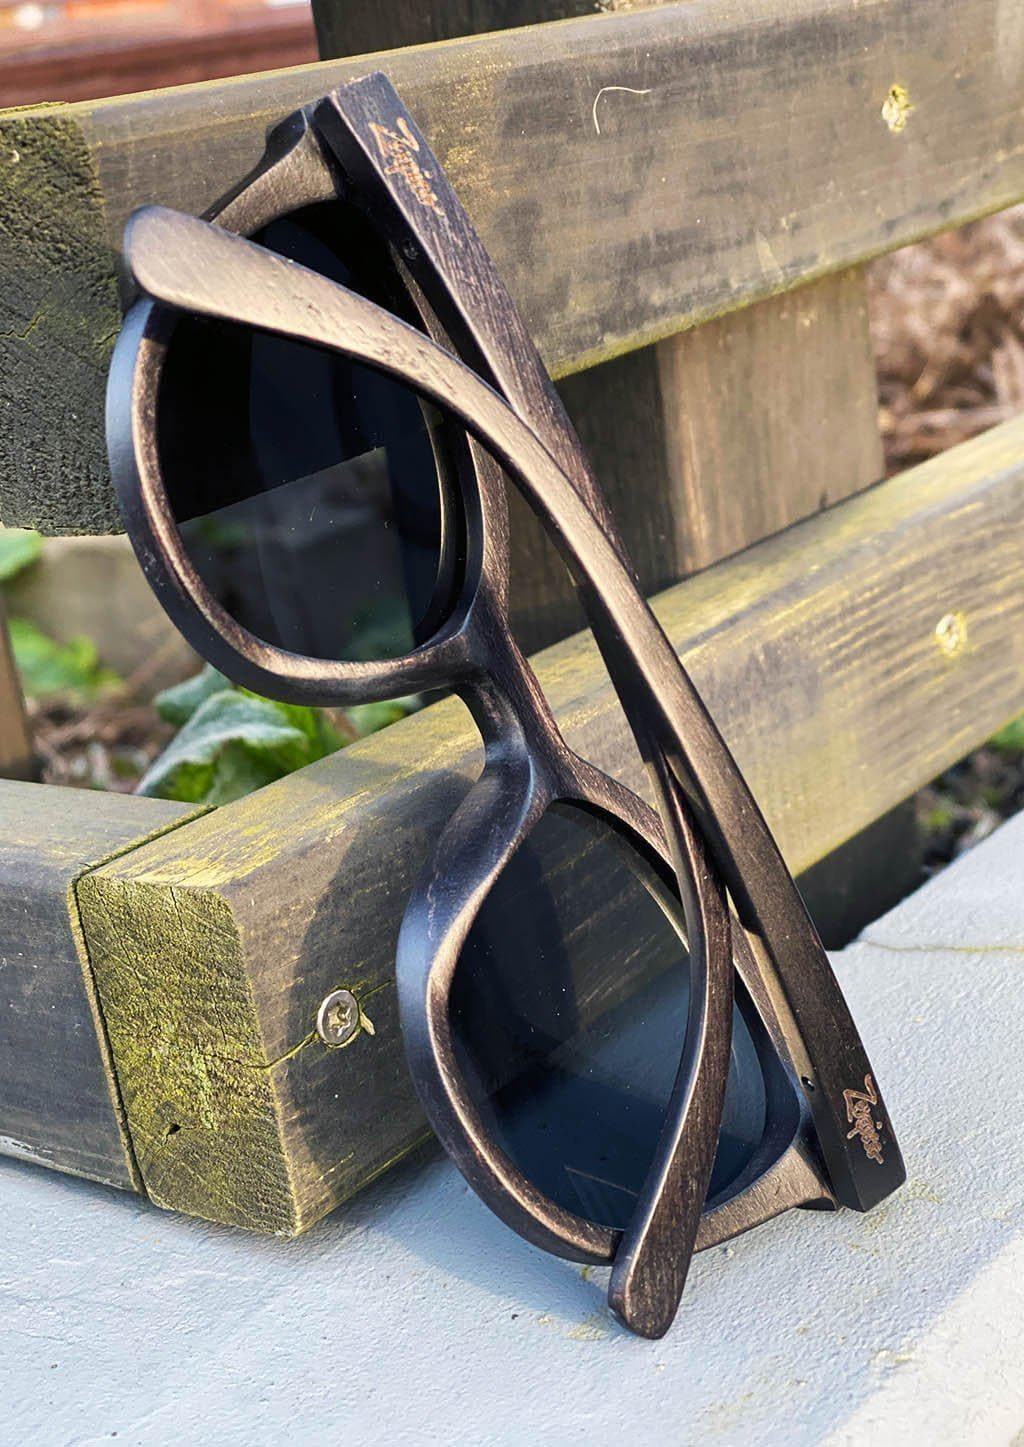 Eyewood - Madison - All wooden sunglasses with style. Details on the back.